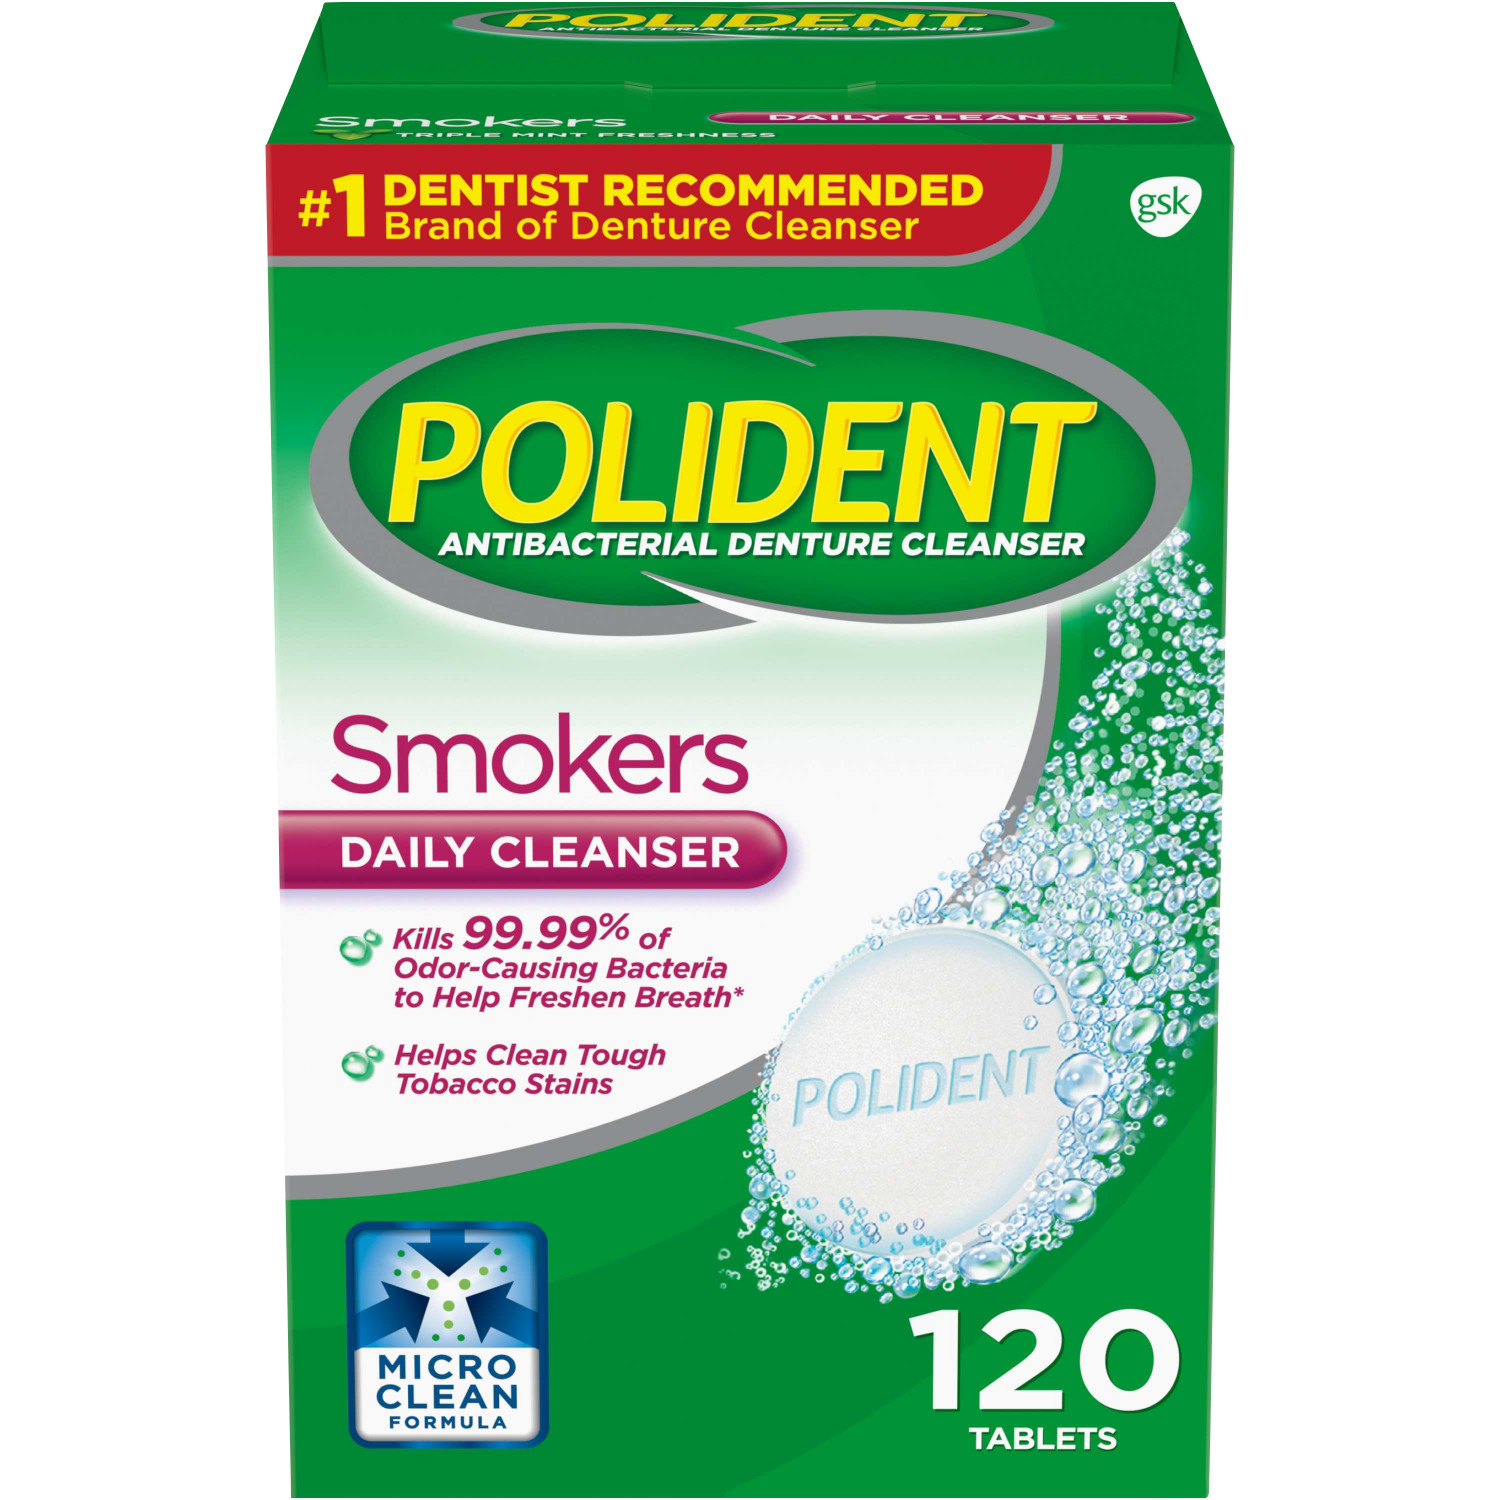 Best Denture Cleaners - Polident Smokers Denture Cleanser 120 ea Review